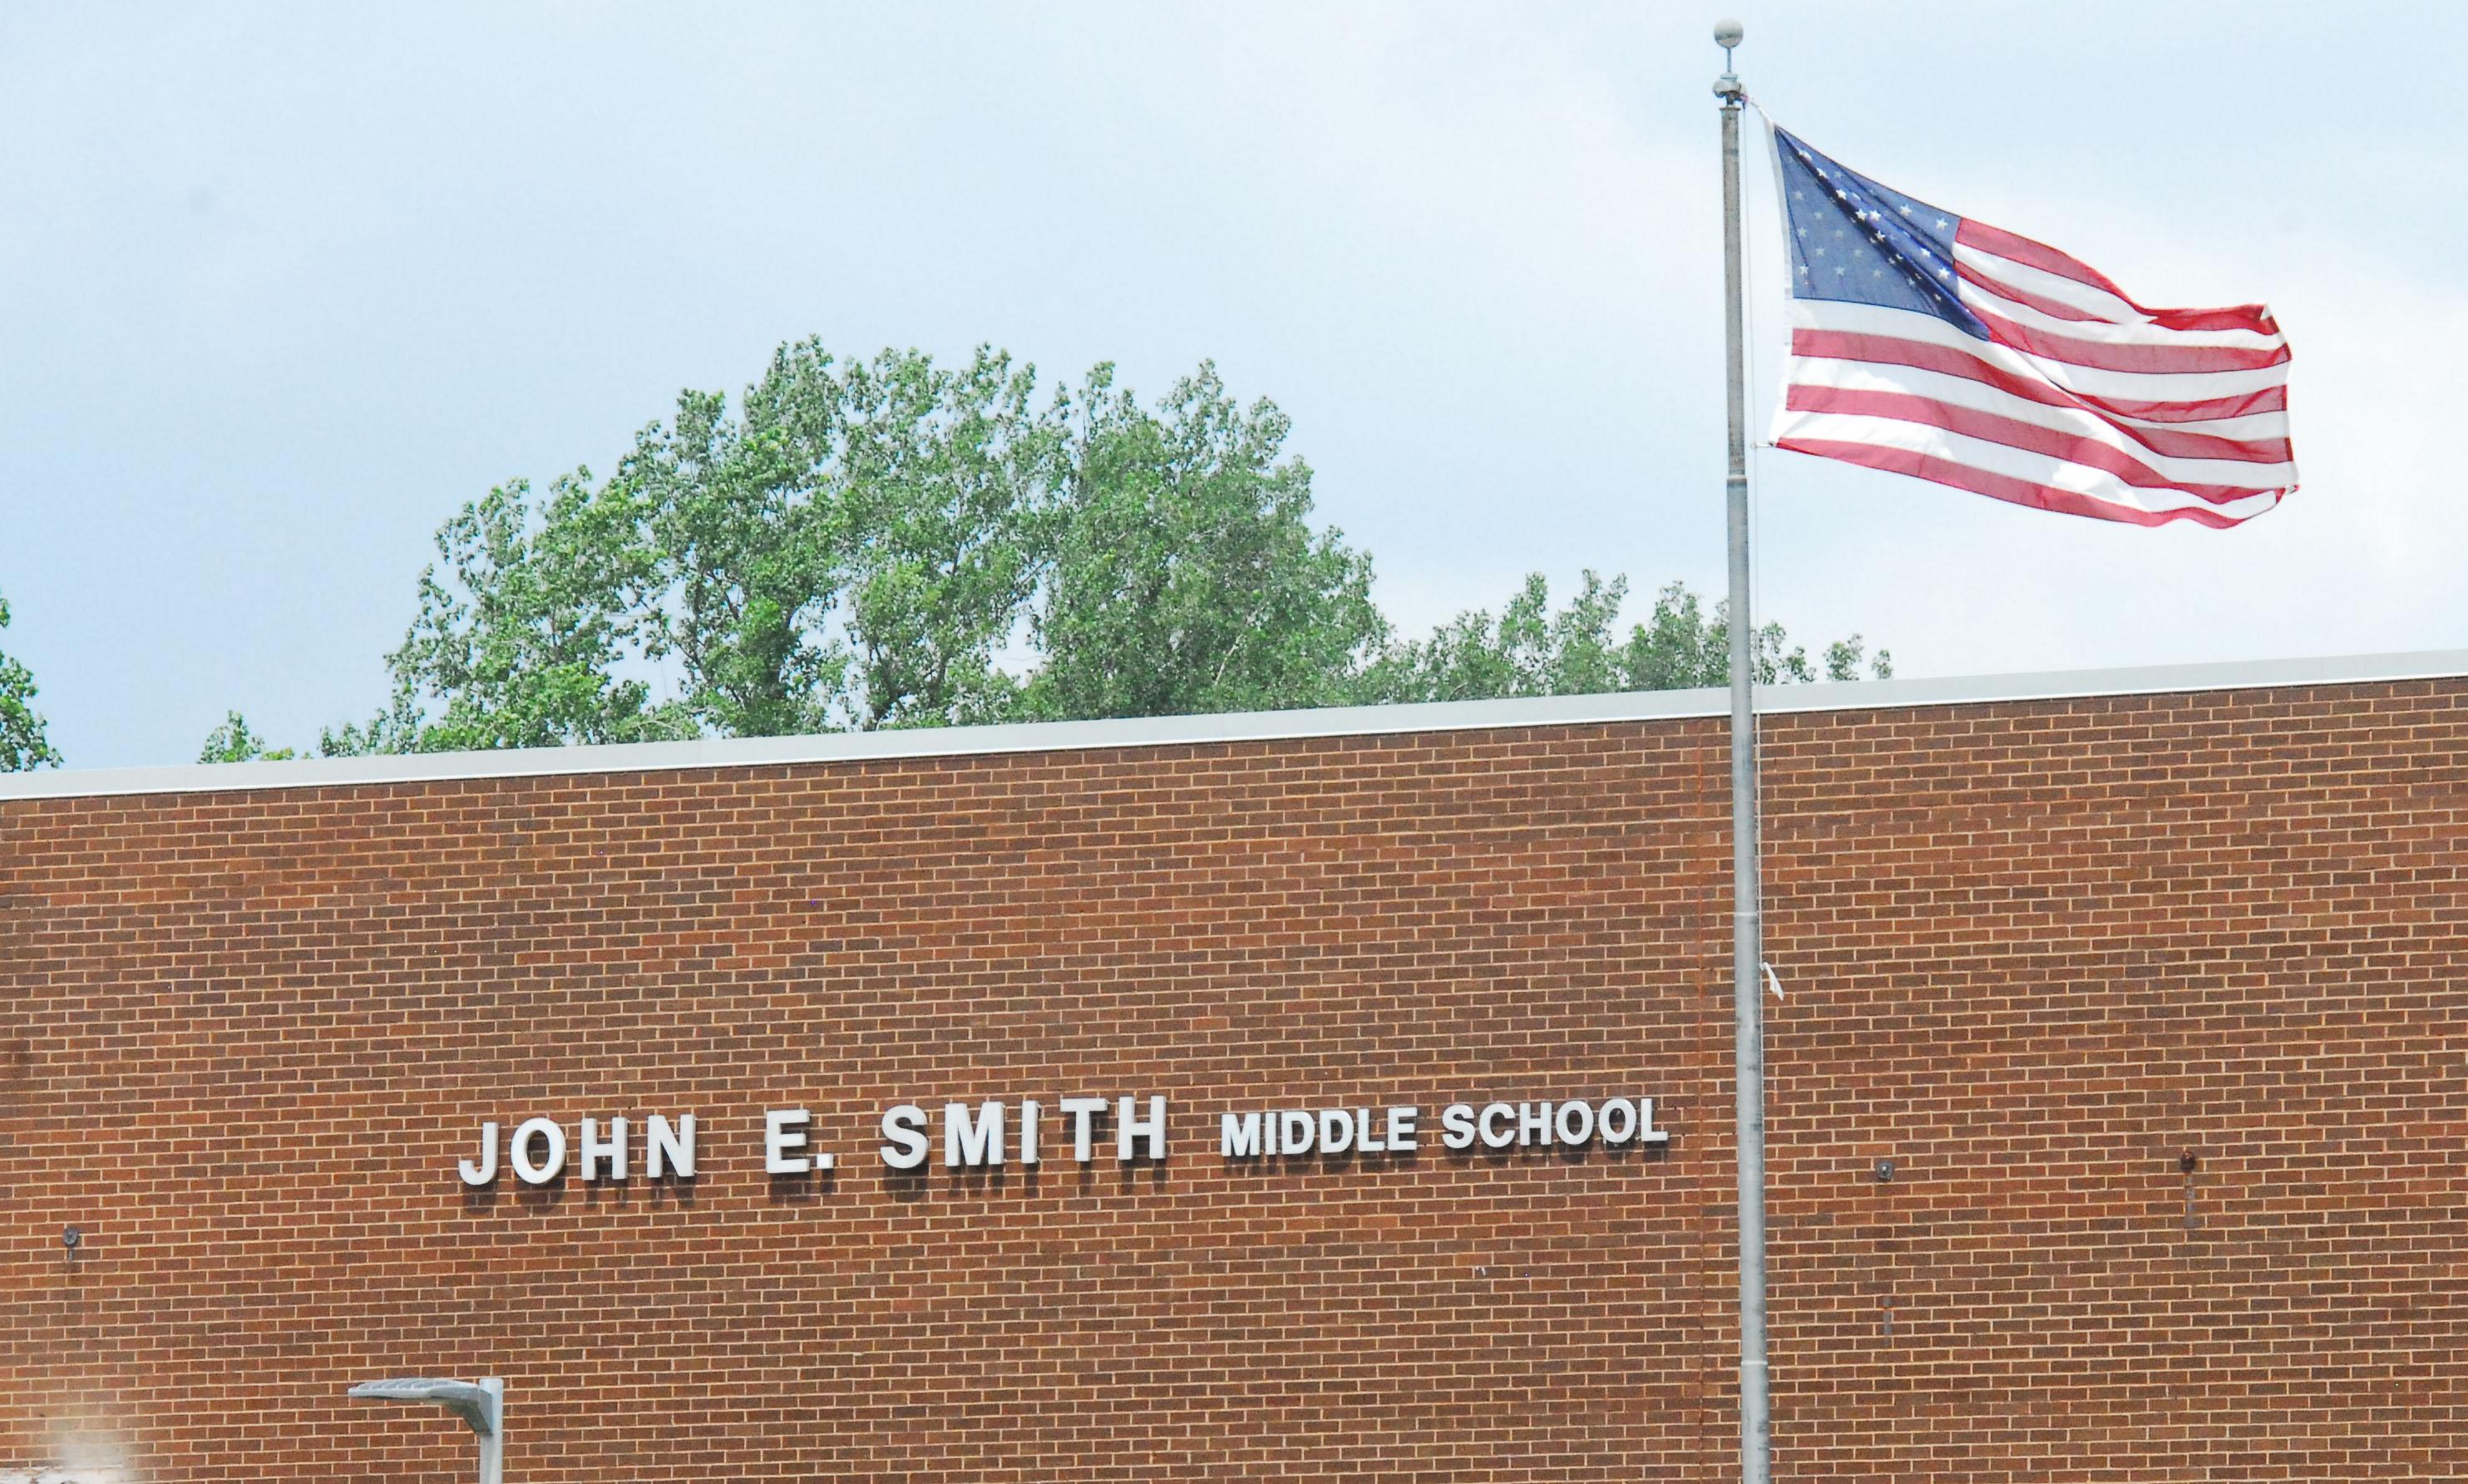 Smith Middle School